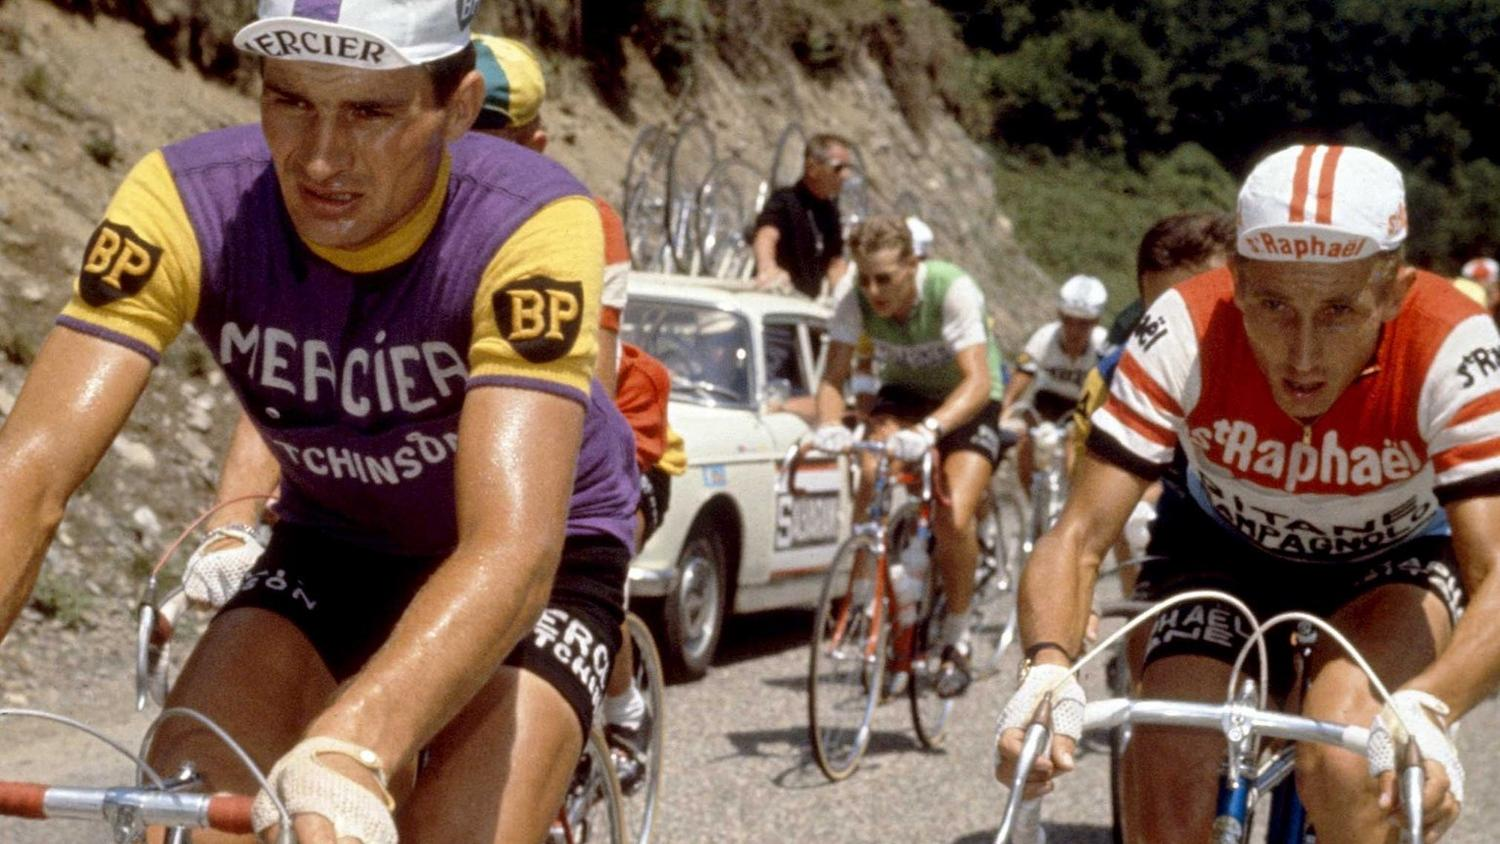 Aside from the iconic leaders' jerseys worn in the race, the route maps of the Tour de France are perhaps the race's most recognisable visual representations.